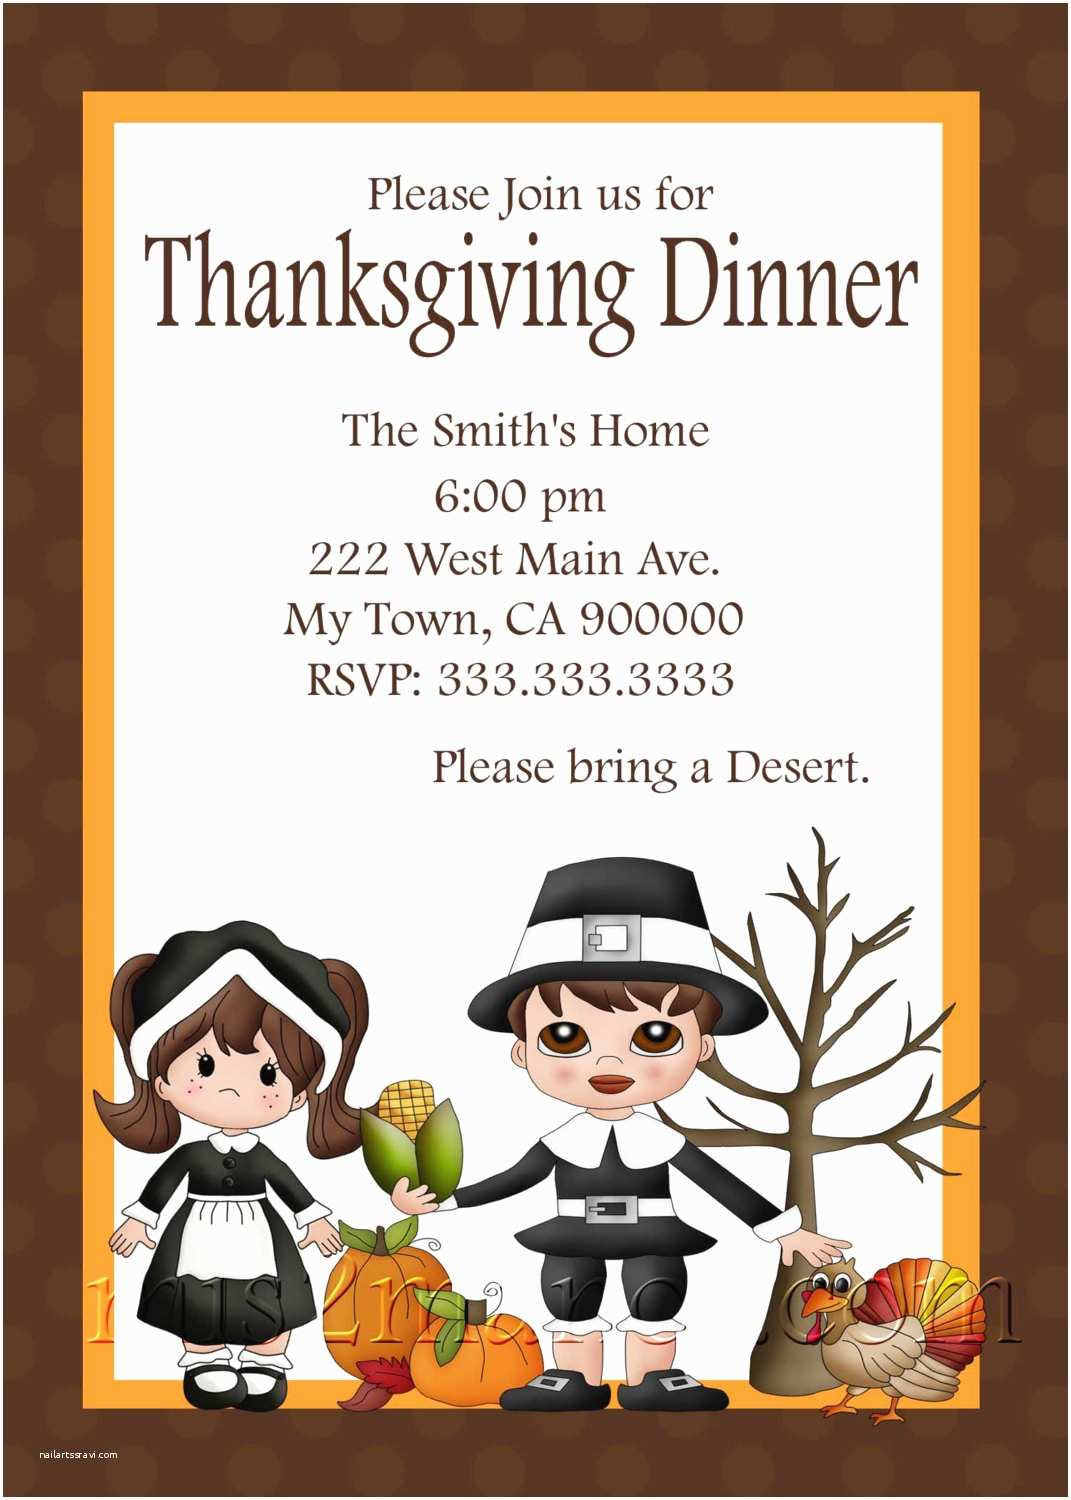 cute thanksgiving invitation card for dinner with little kids picture and ve ables and turkey also brown font color